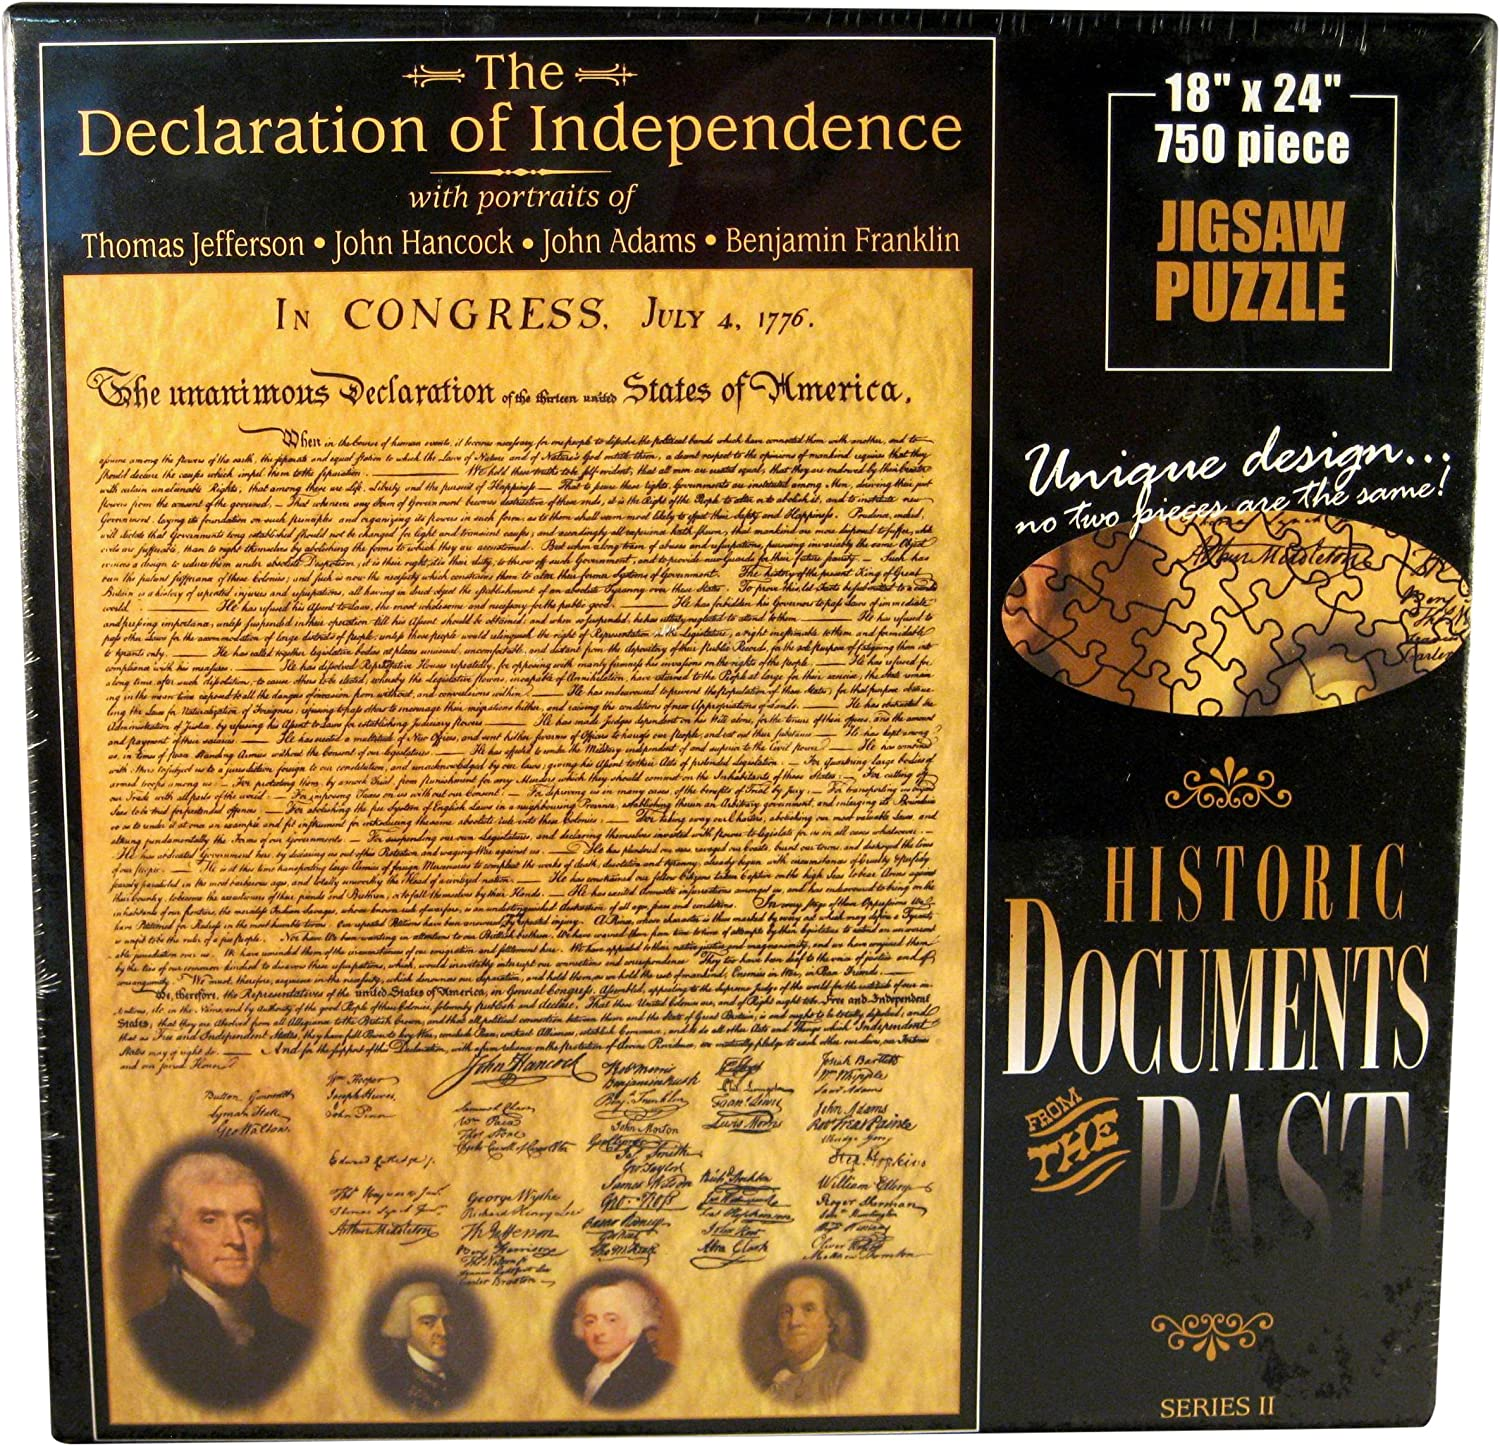 American Documents The Declaration of Independence Jigsaw Puzzle, 750Piece by American Documents